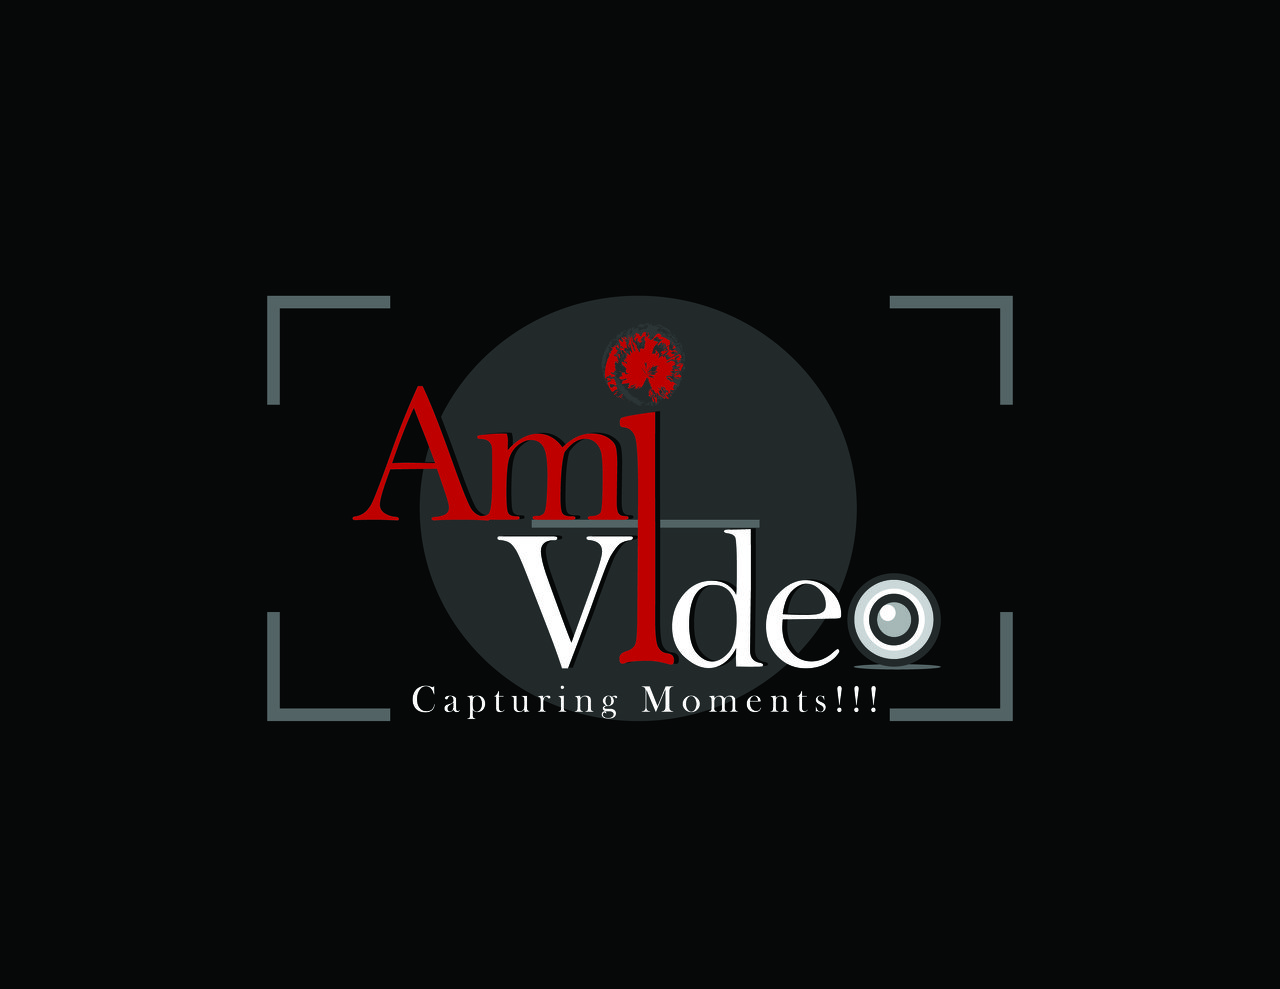 Ami+Video+Final+Logo+in+CMYK+on+Black.jpg